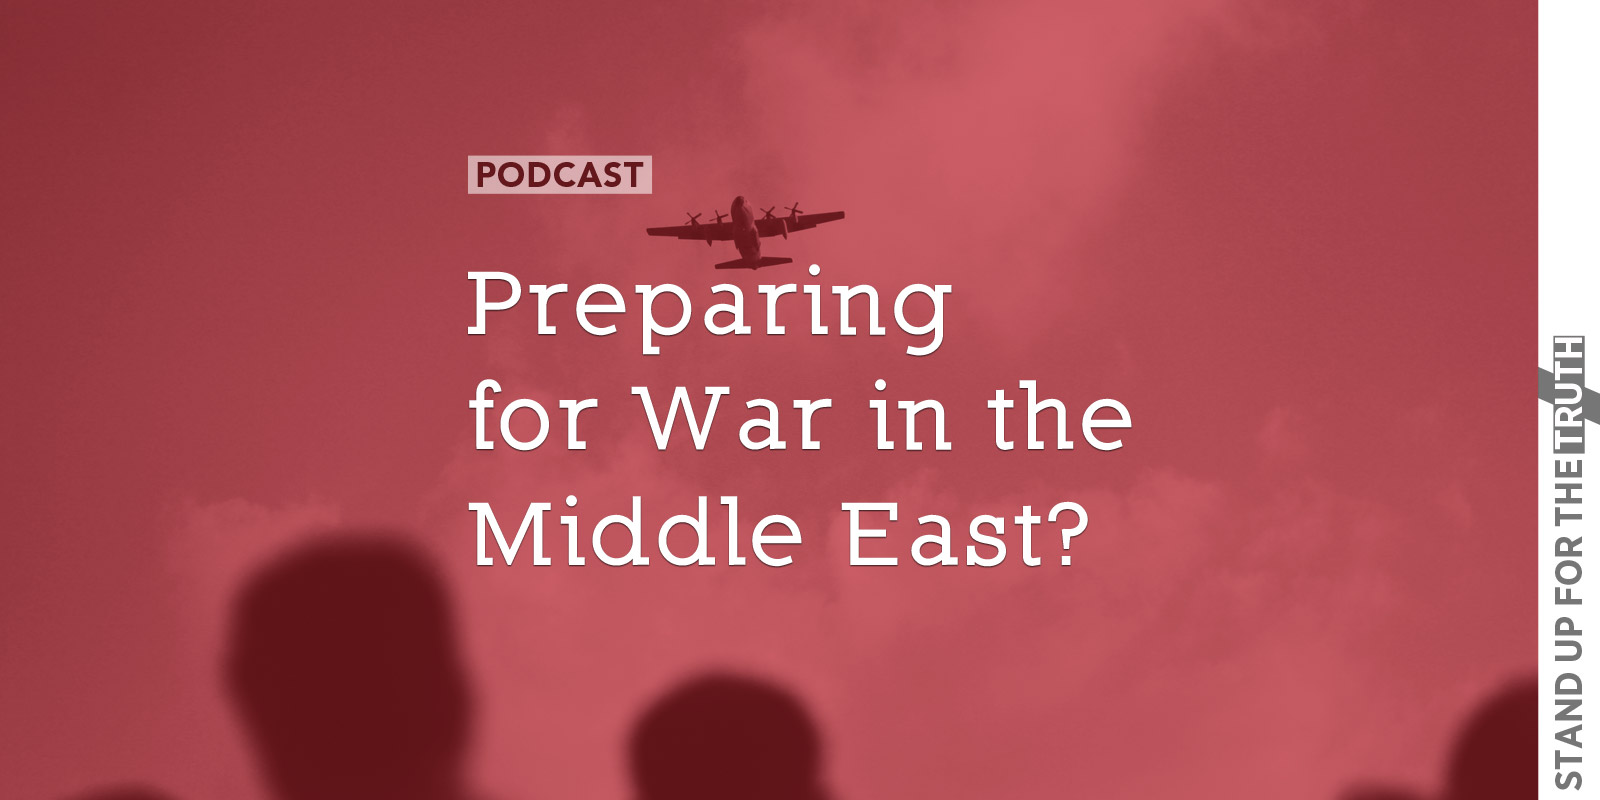 Preparing for War in the Middle East?